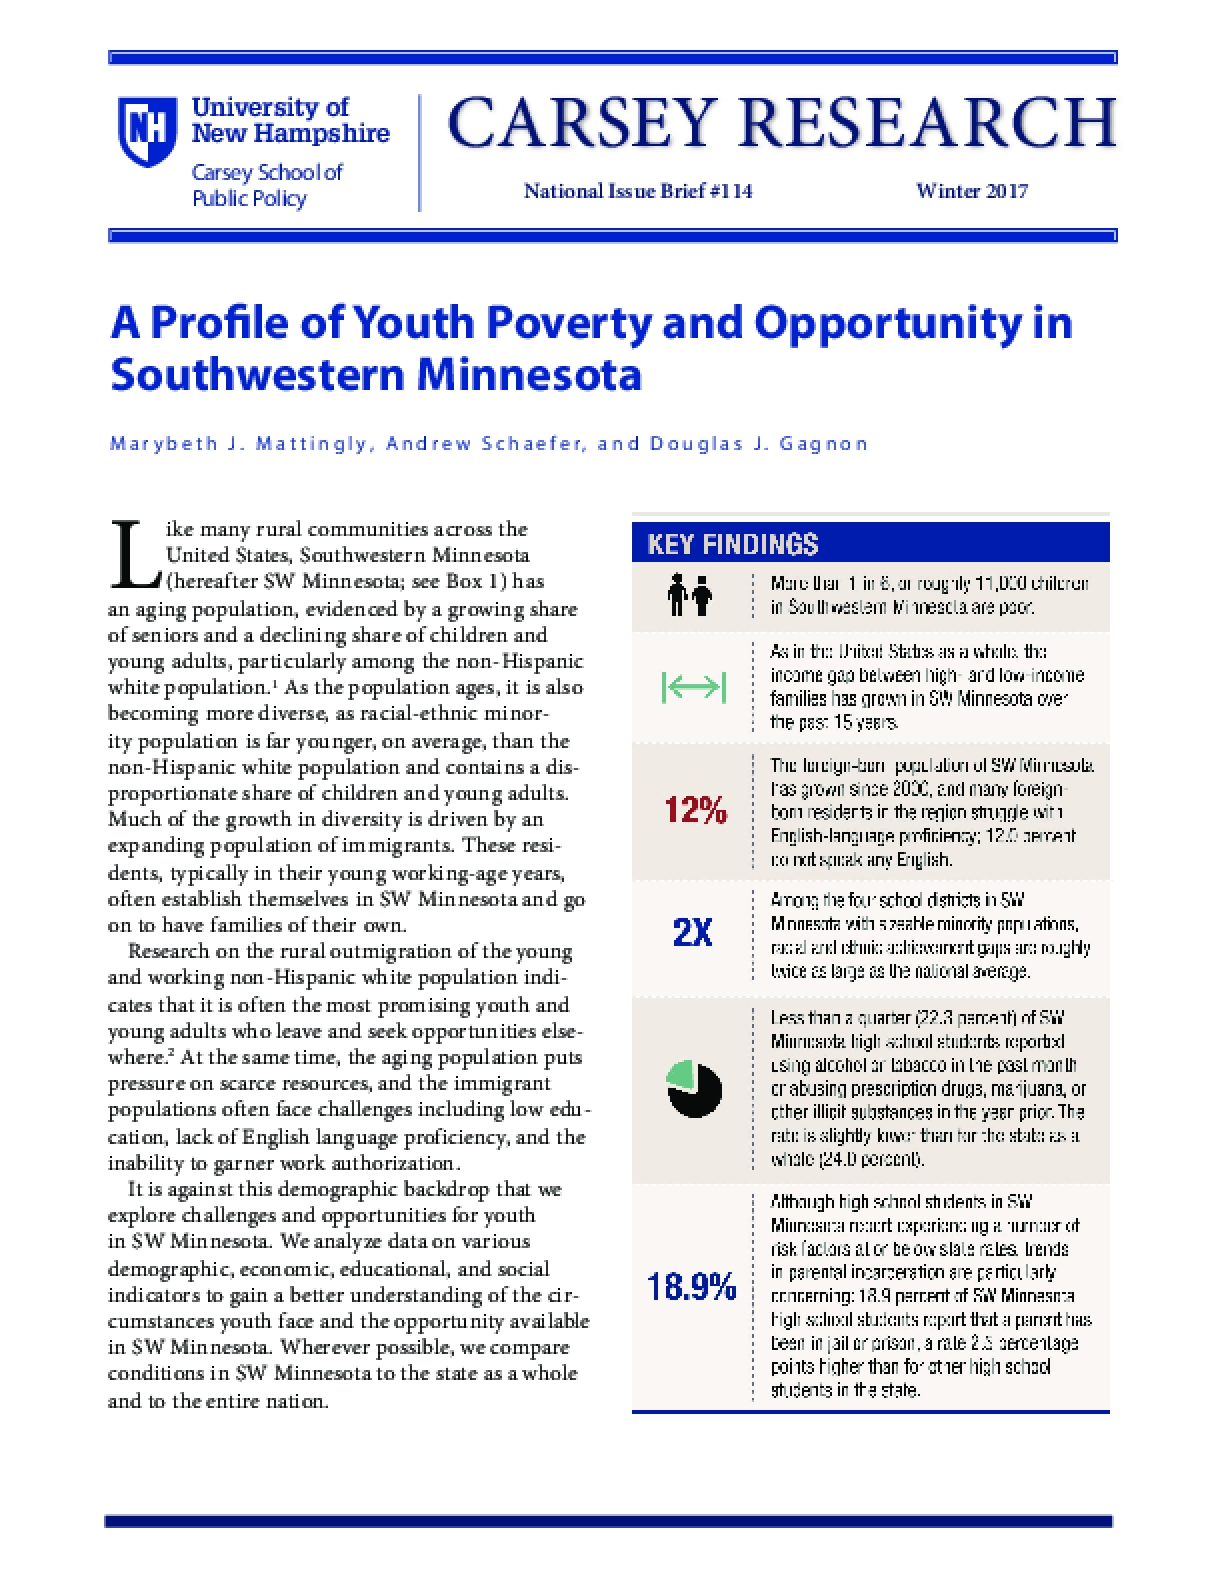 A Profile of Youth Poverty and Opportunity in Southwestern Minnesota